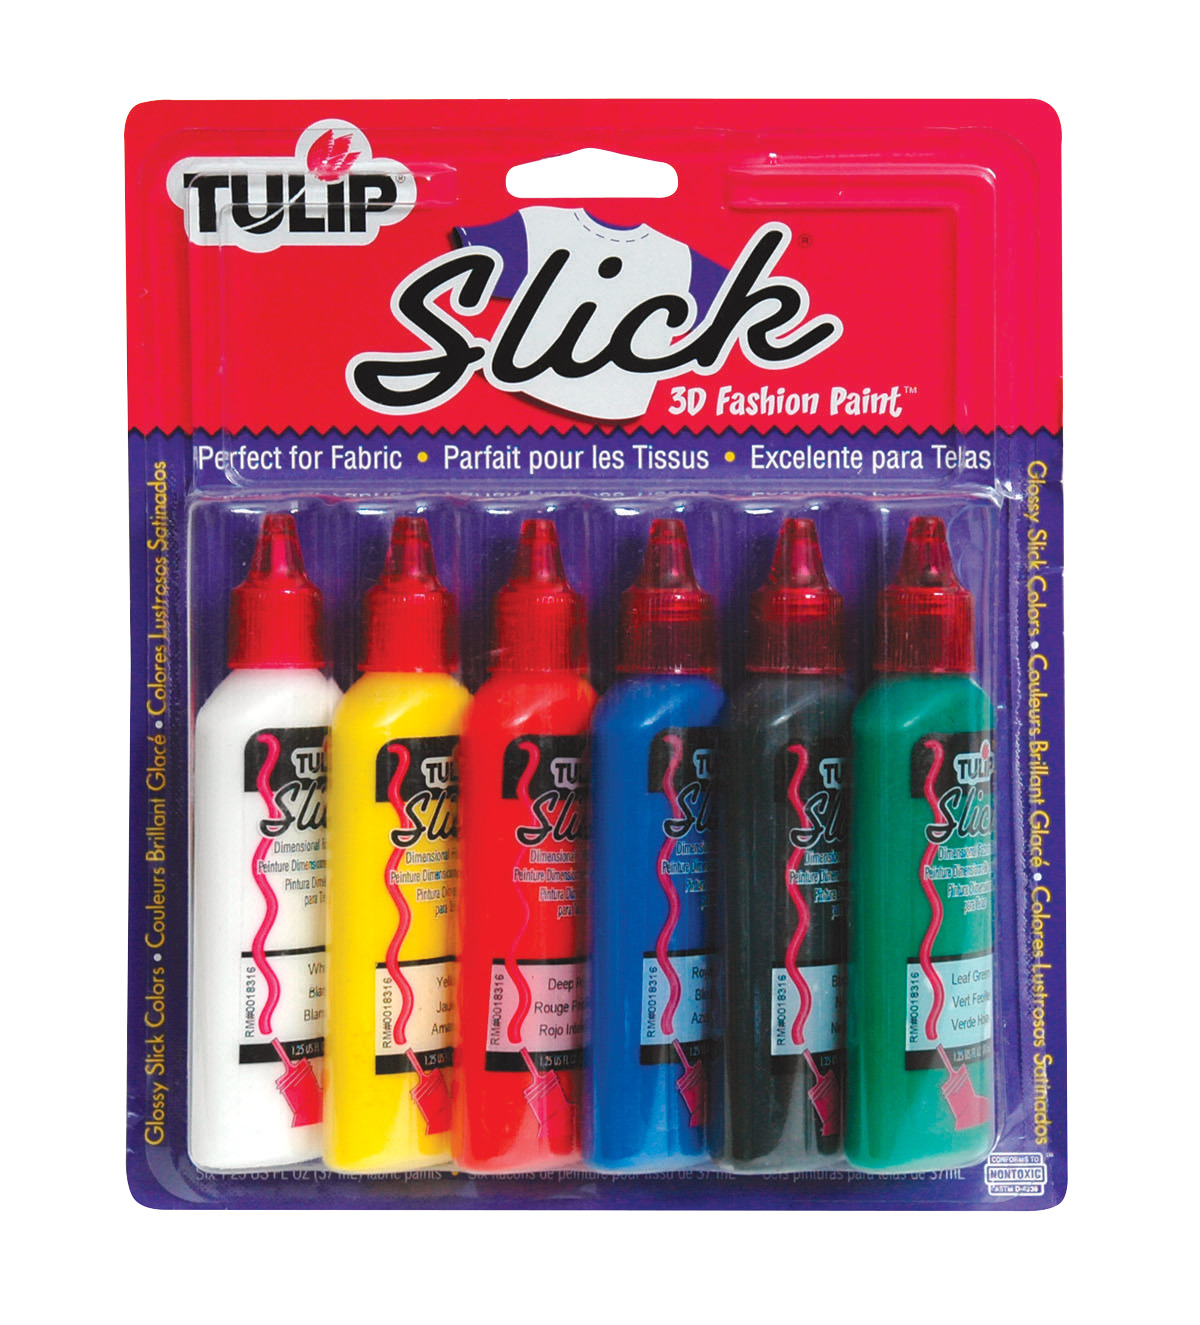 Tulip Washable 3D Fabric Paint Set, 1.25 oz Bottle, Assorted Slick Color, Set of 6